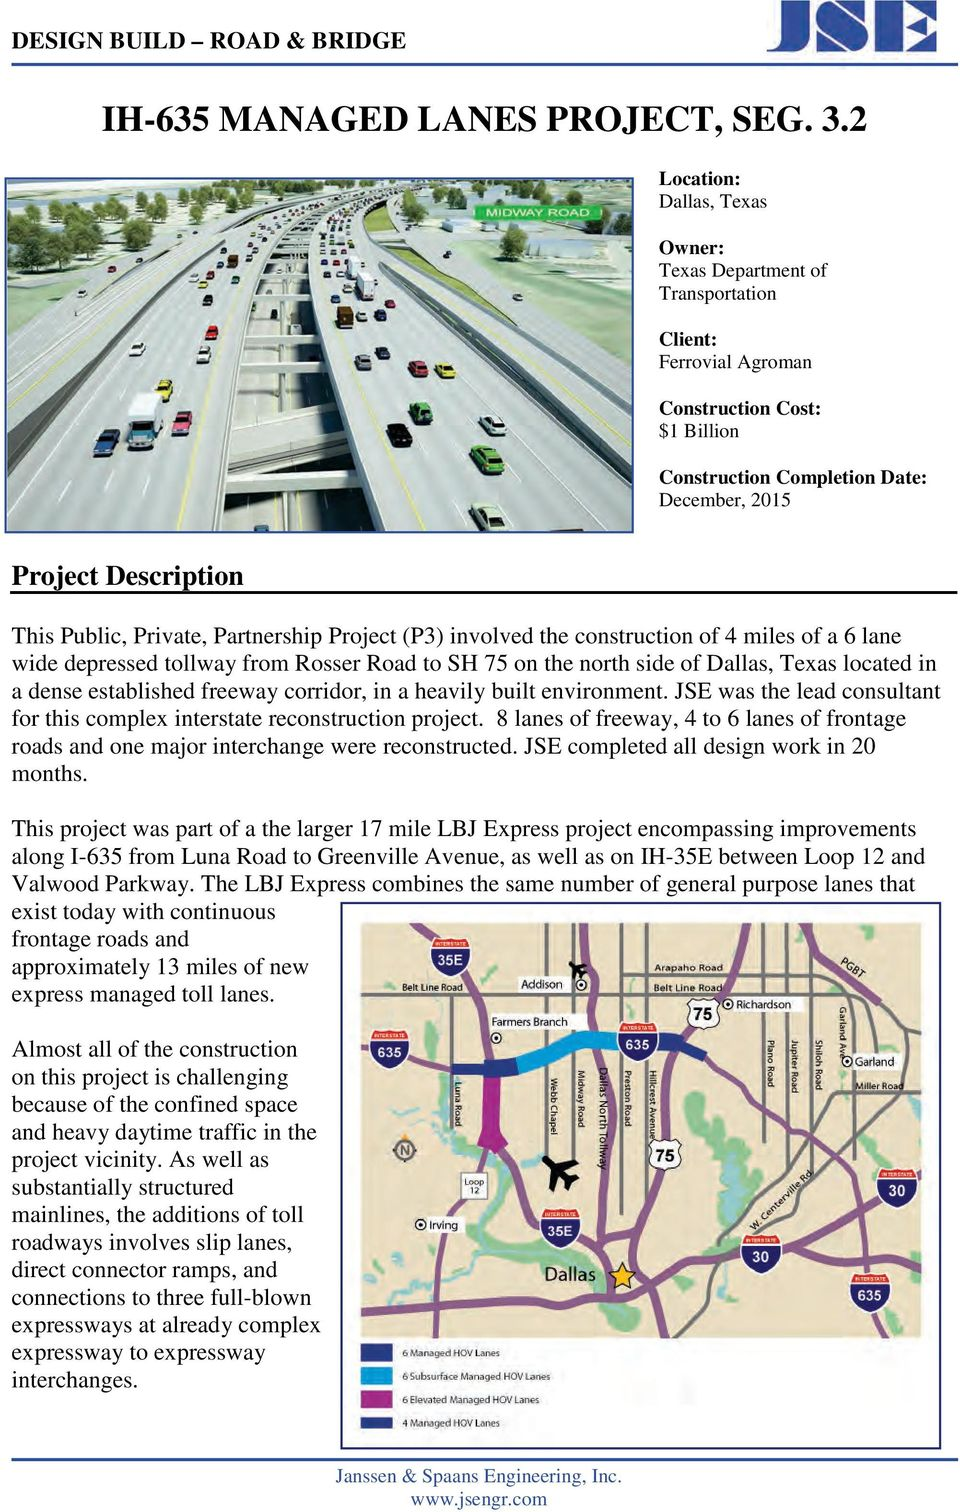 Public, Private, Partnership Project (P3) involved the construction of 4 miles of a 6 lane wide depressed tollway from Rosser Road to SH 75 on the north side of Dallas, Texas located in a dense